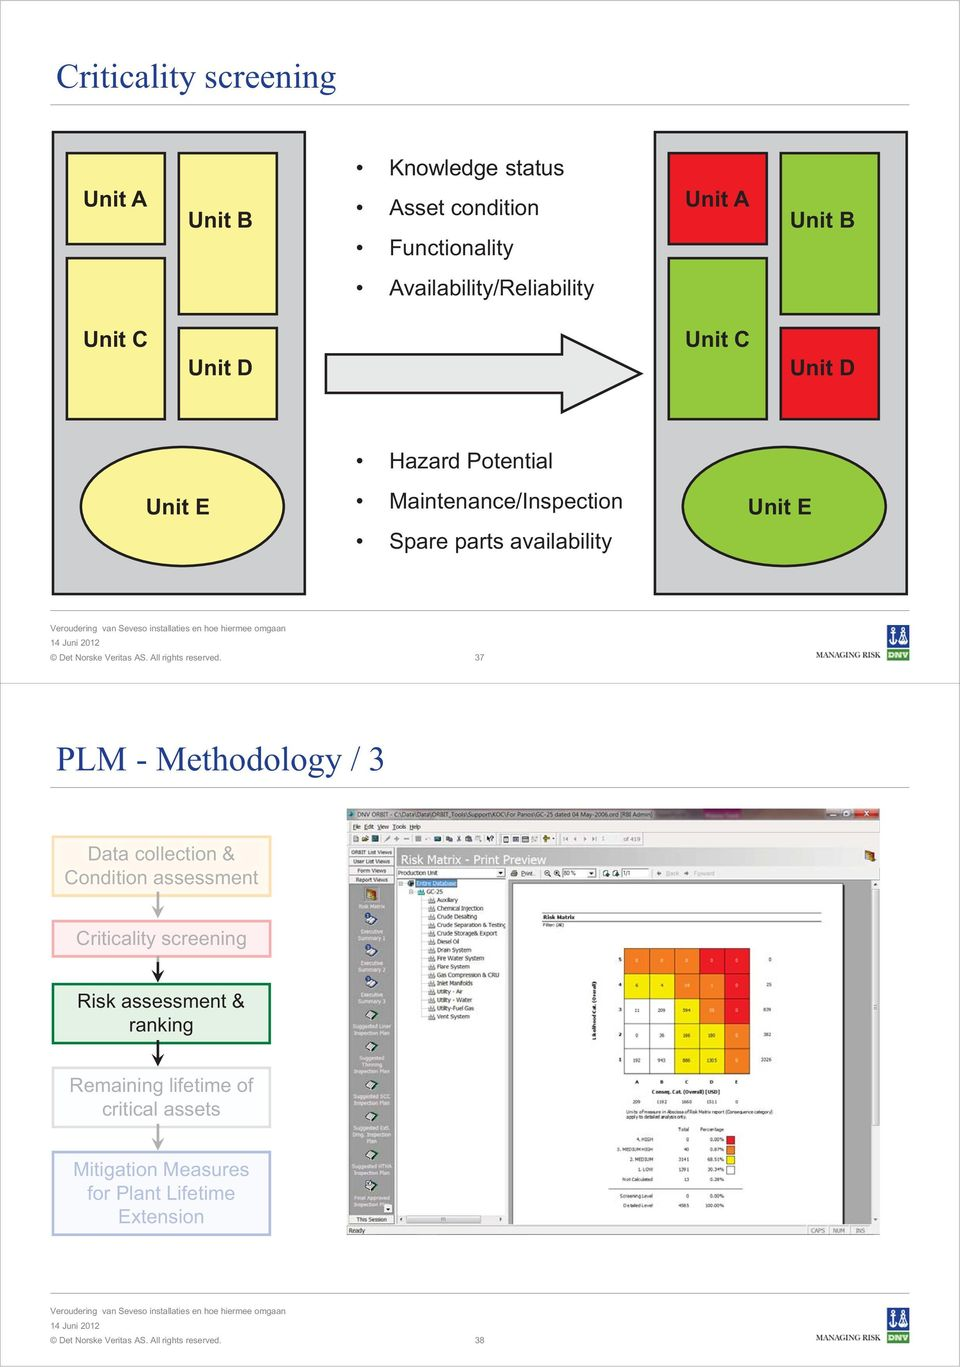 parts availability Unit E 37 PLM - Methodology / 3 Data collection & Condition assessment Criticality